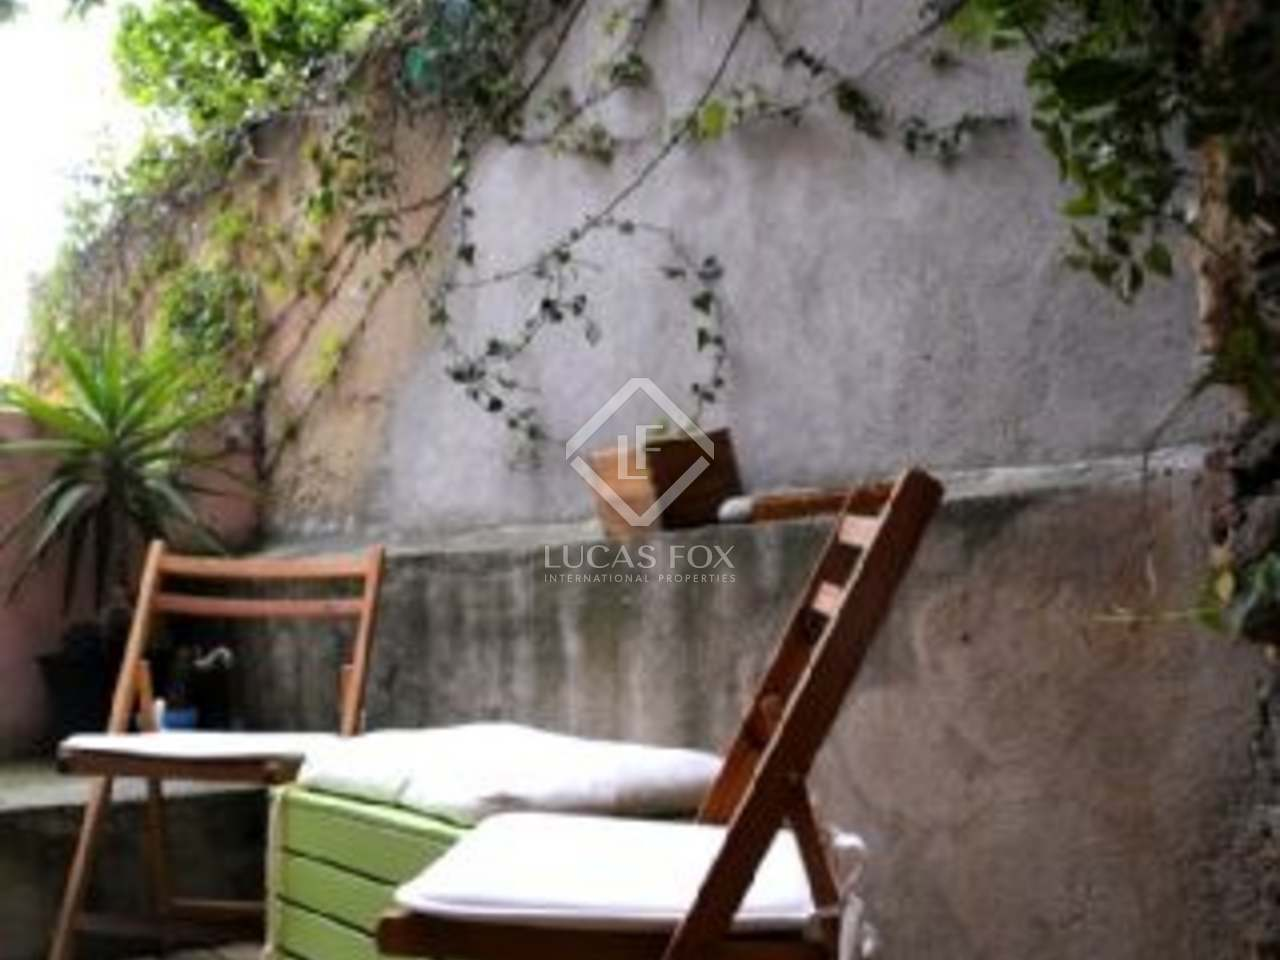 A charming two bedroom apartment for sale in a stylish renovated old palace in Lisbon.